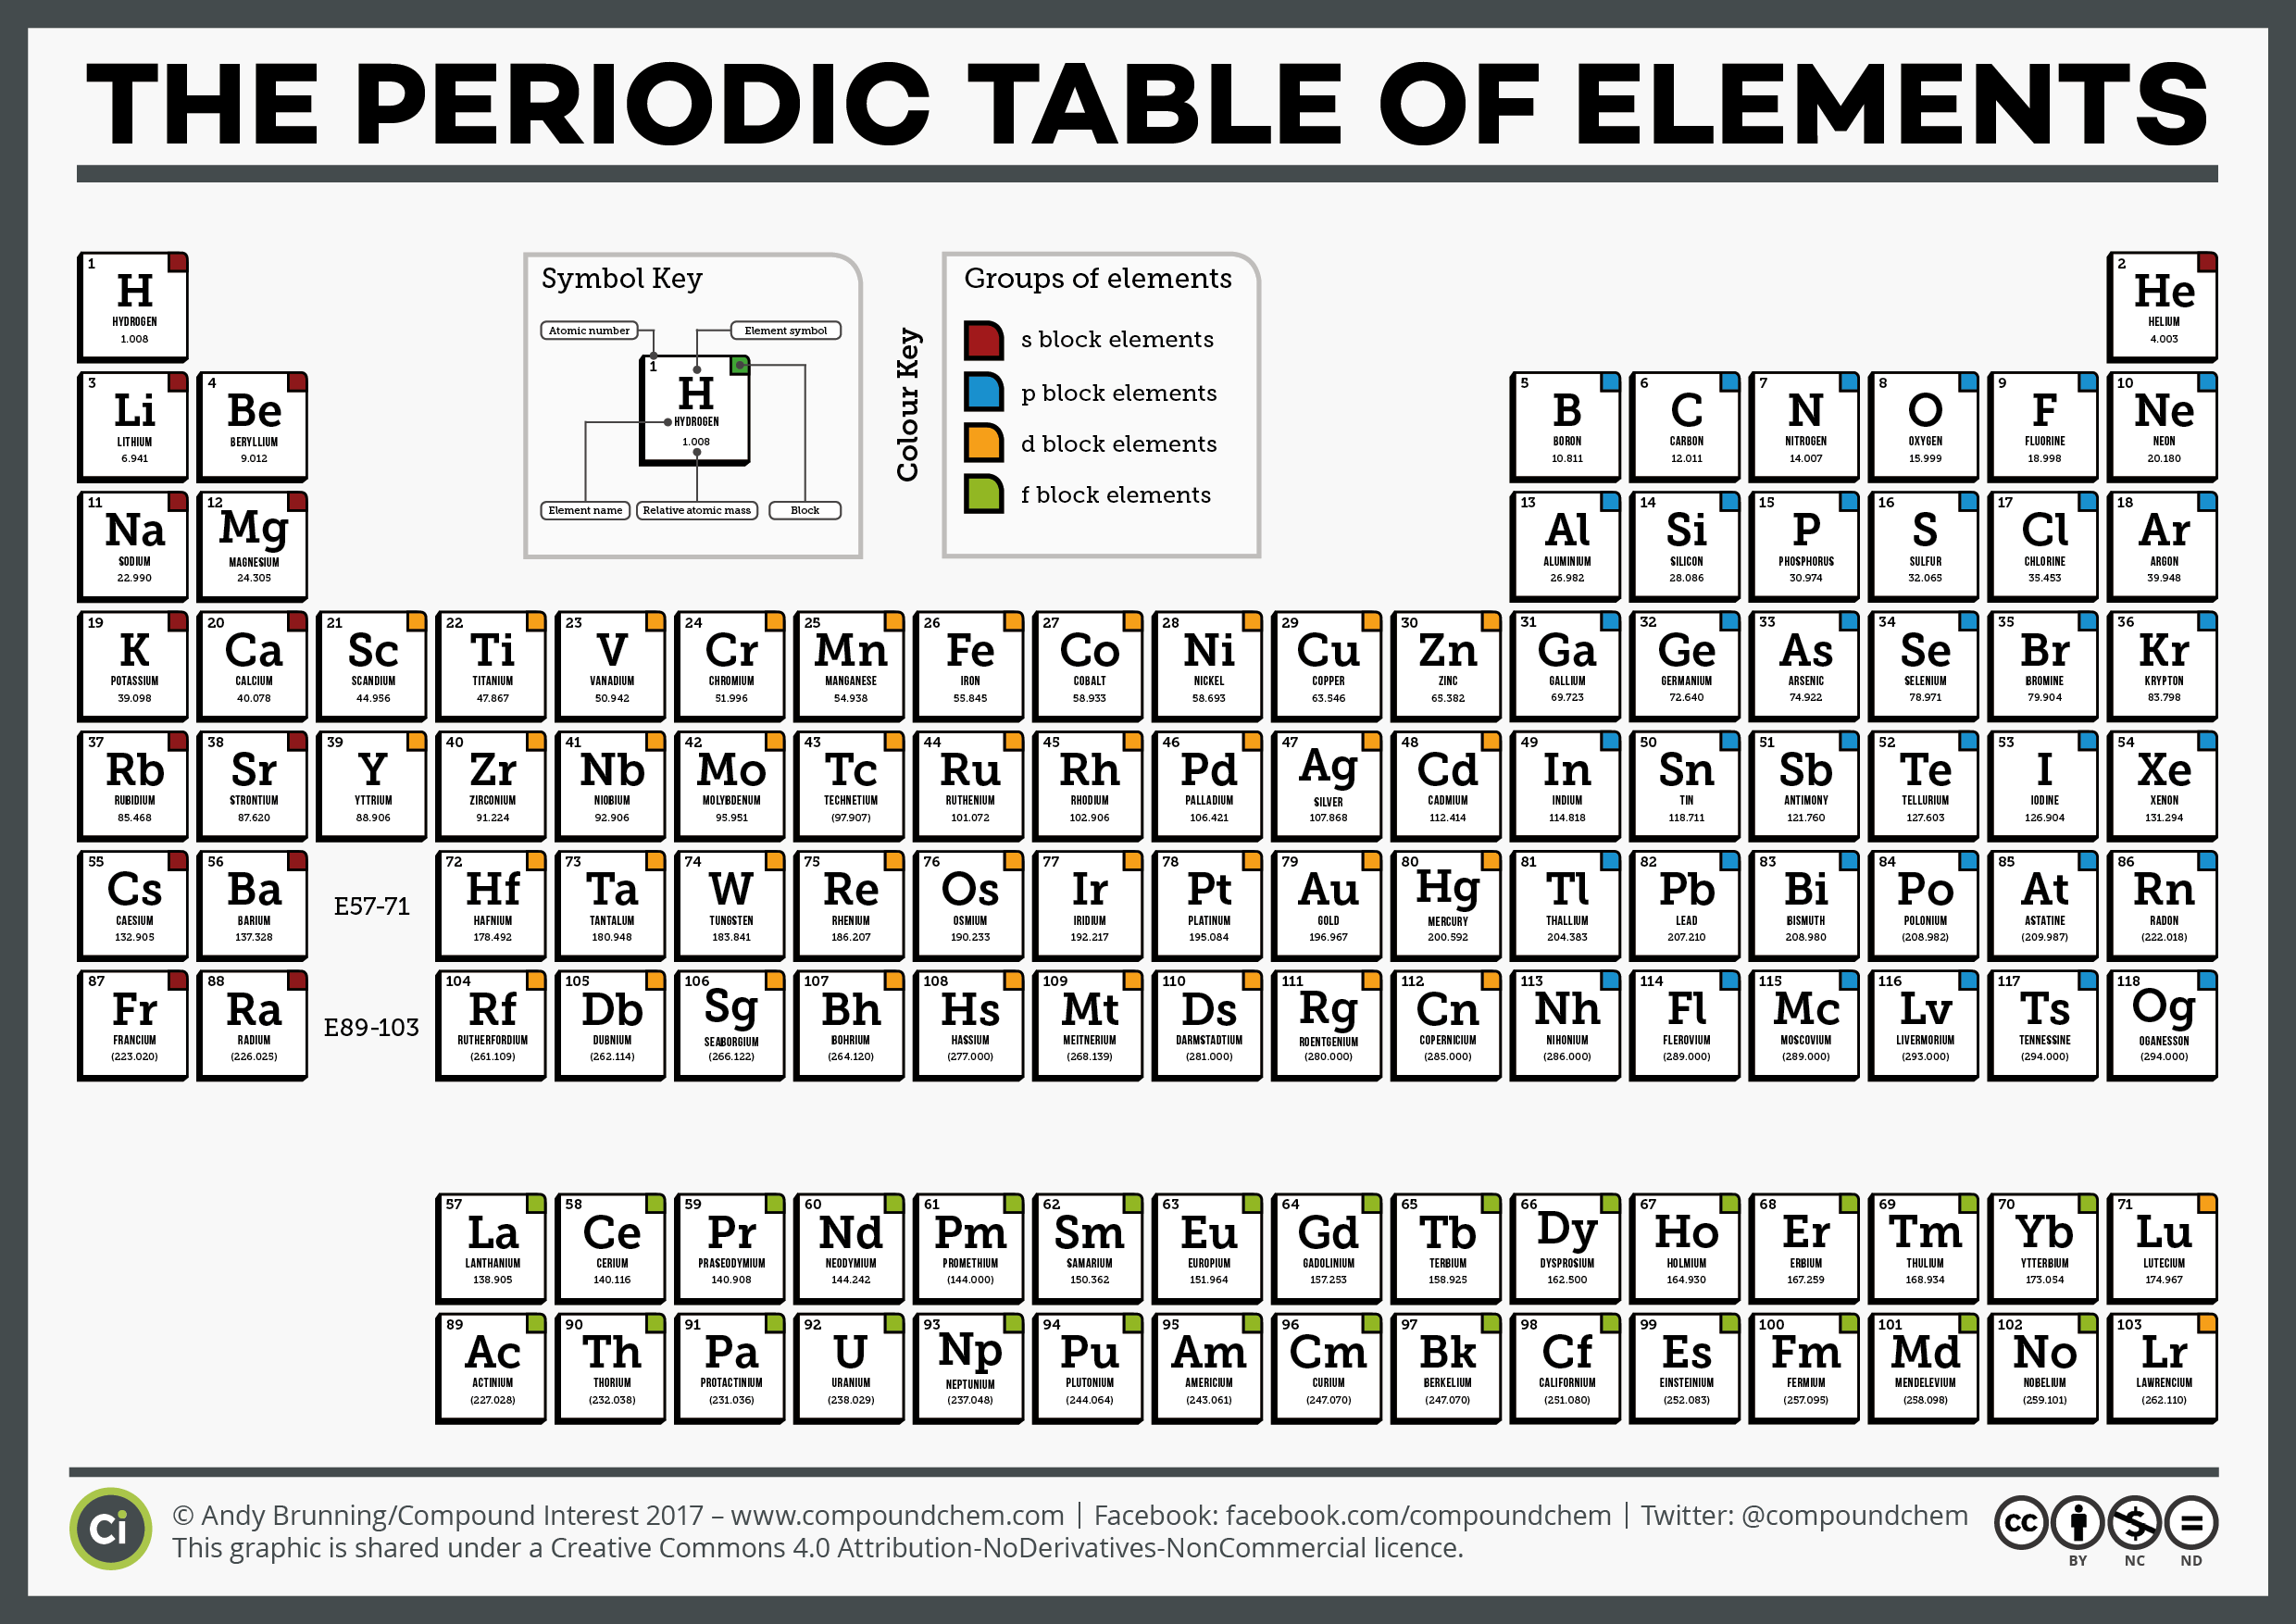 Compound interest national periodic table day six for 110 element in periodic table